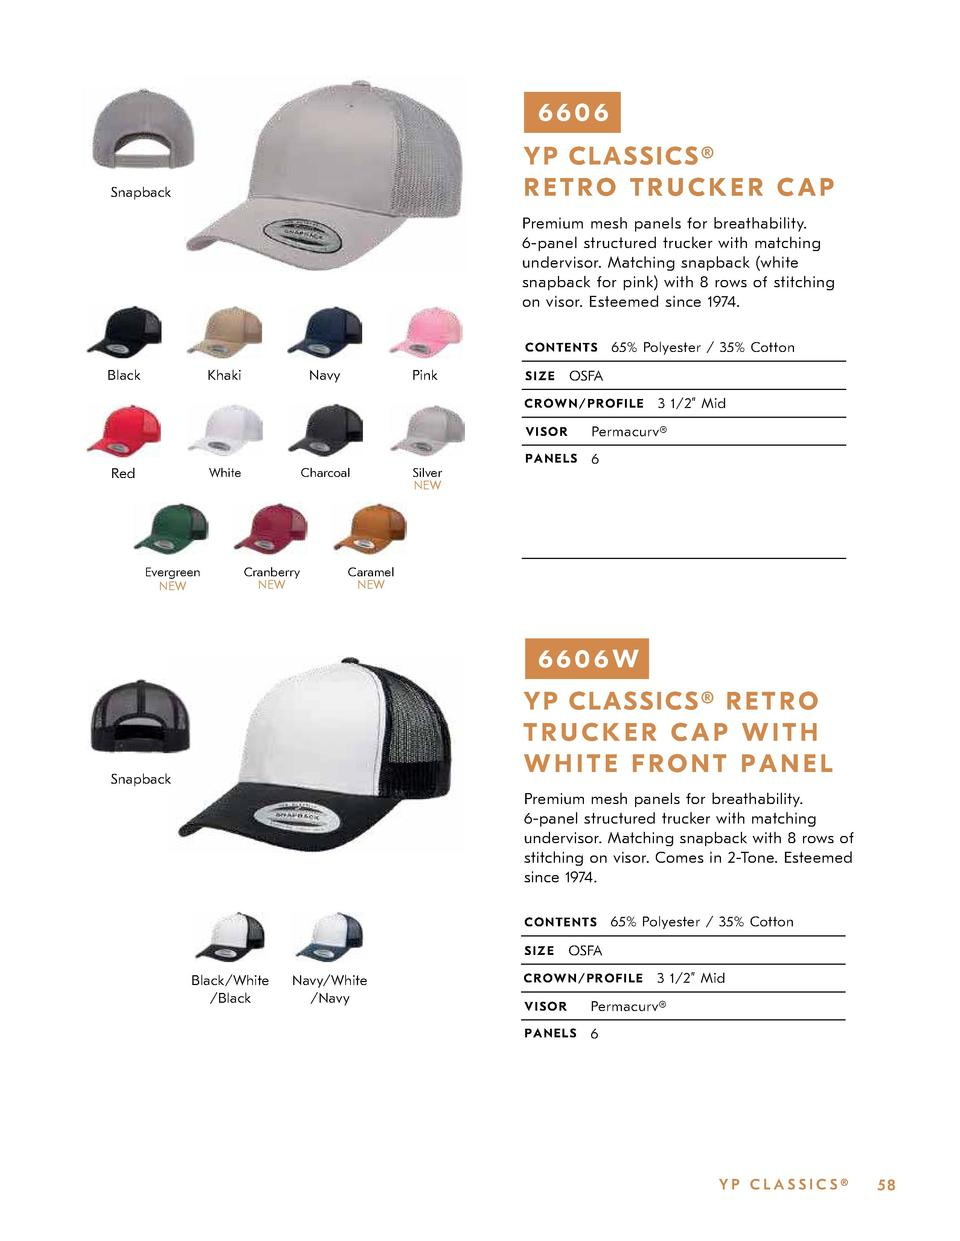 6606 Y P CLAS S ICS   RETRO TRUCKER CAP  Snapback  Premium mesh panels for breathability. 6-panel structured trucker with ...